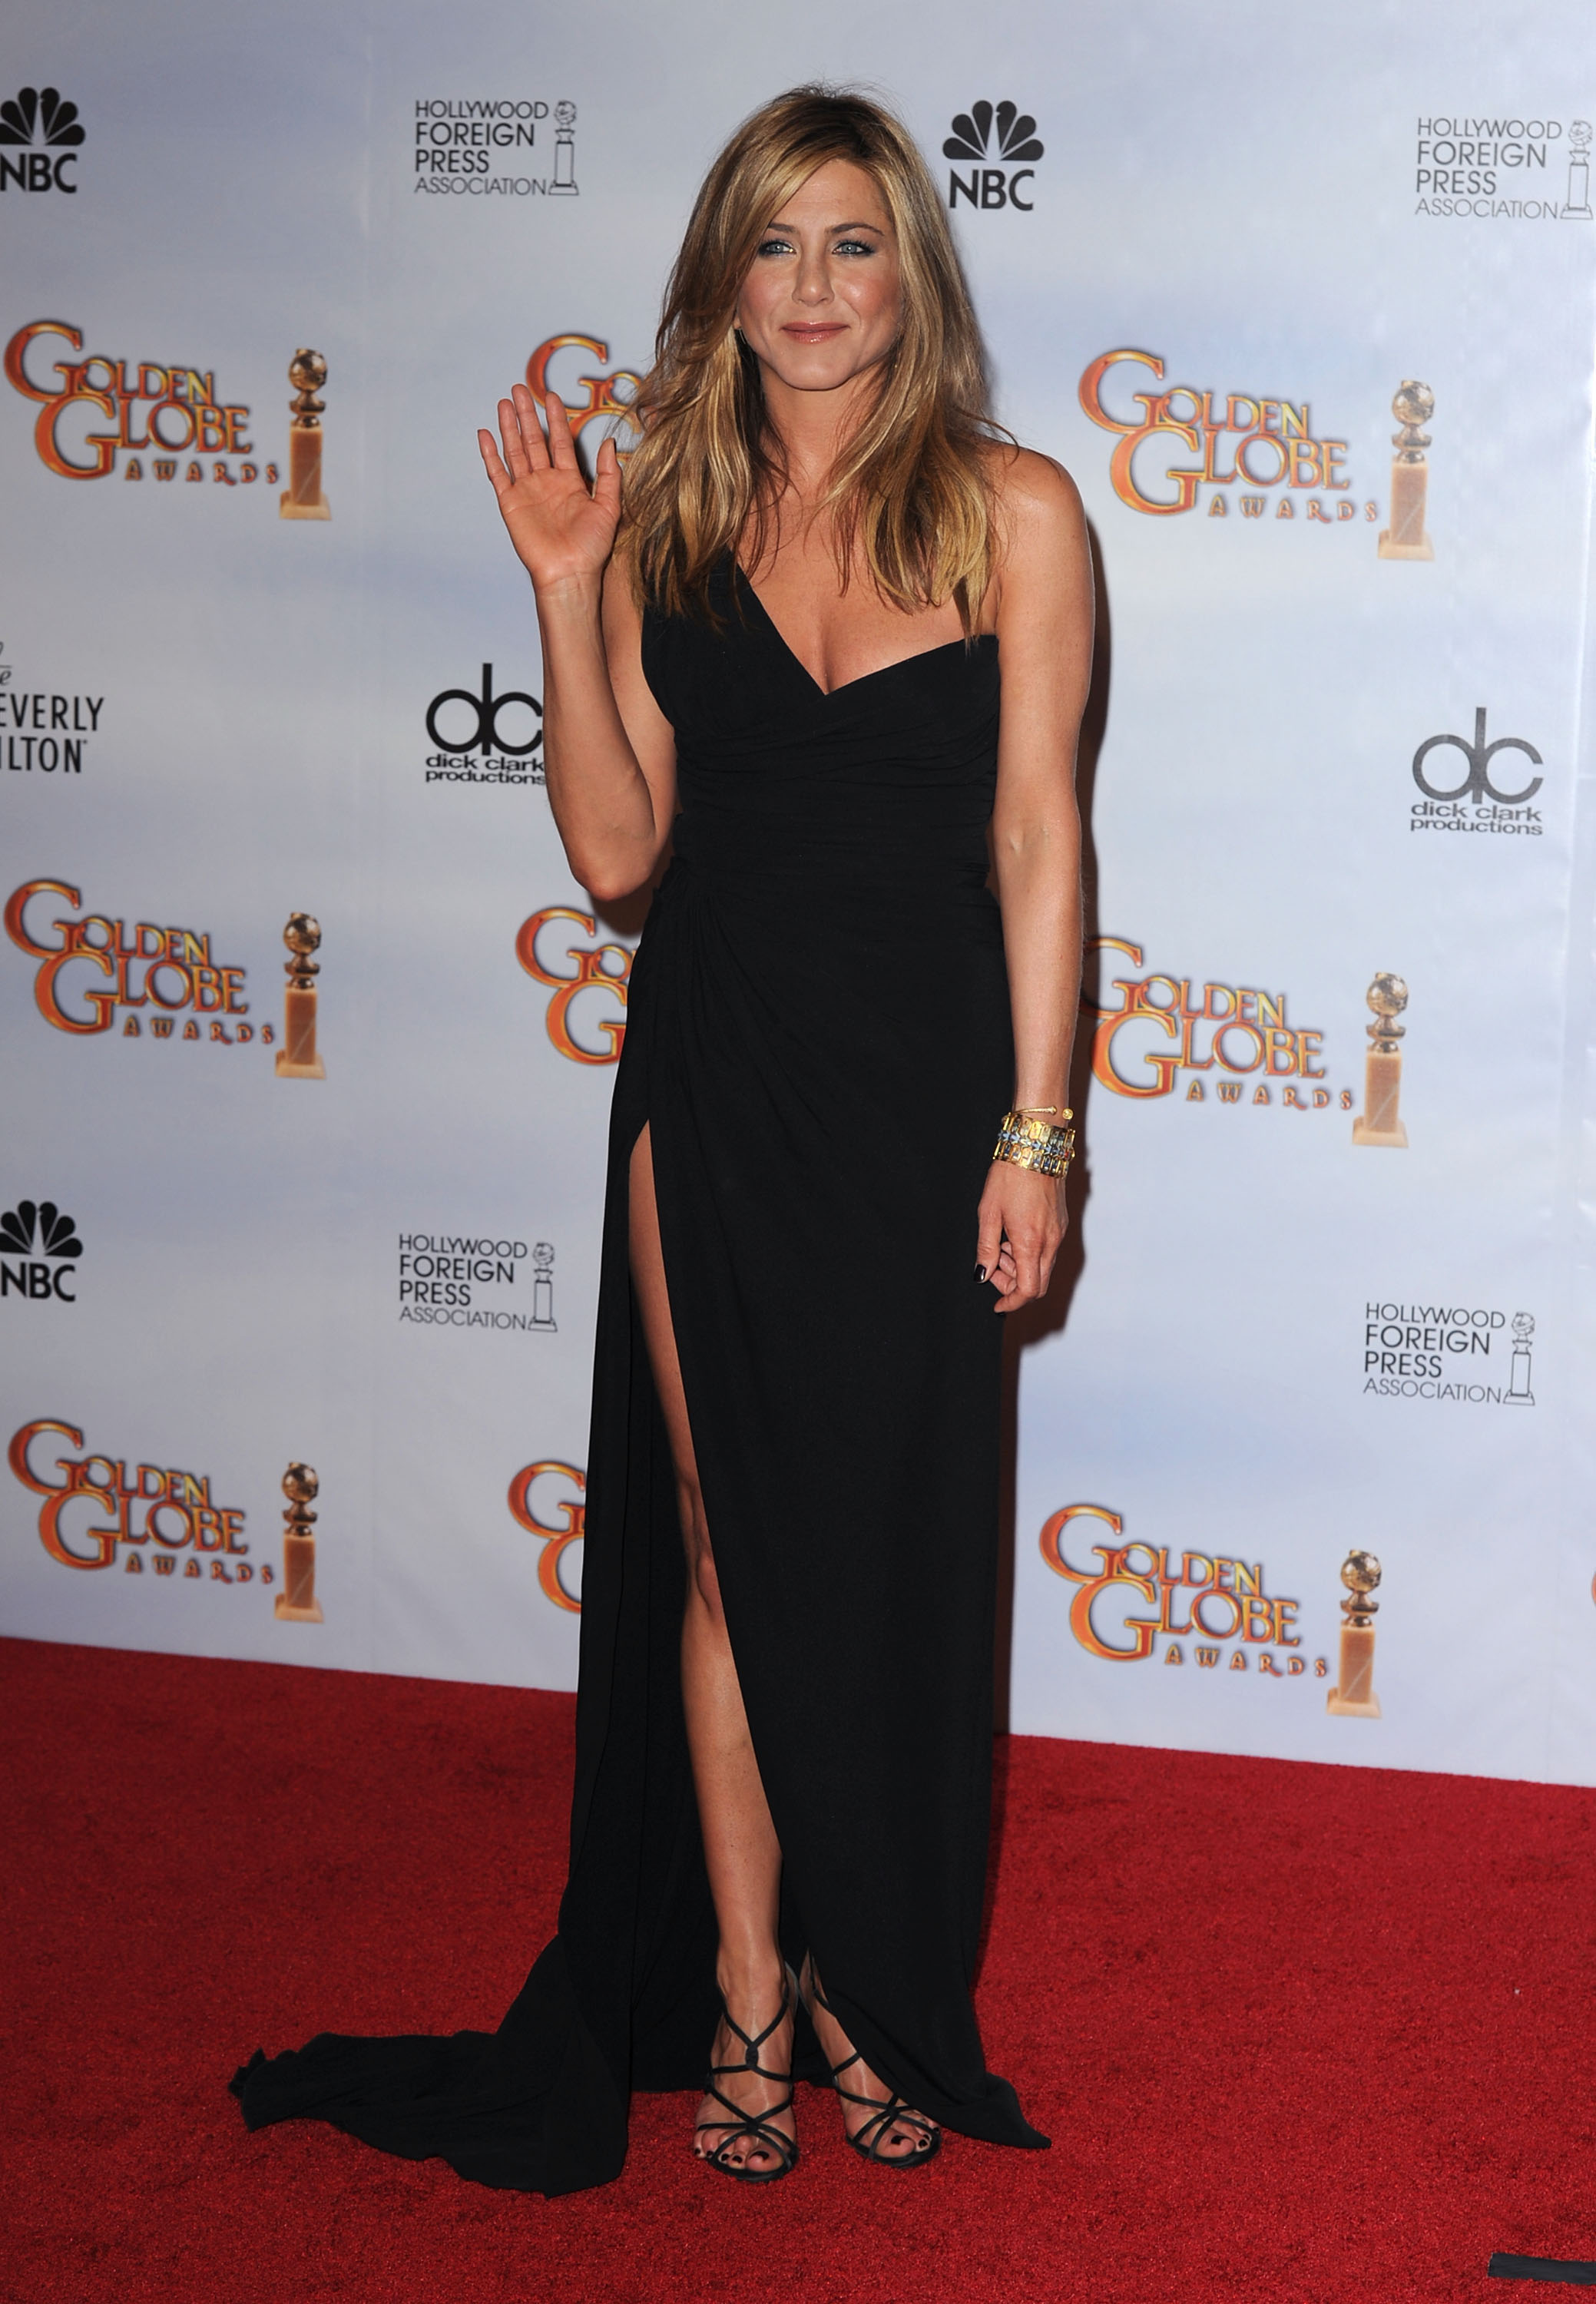 Jennifer Aniston 39 S Golden Globe Legs Photos 2010 01 18 09